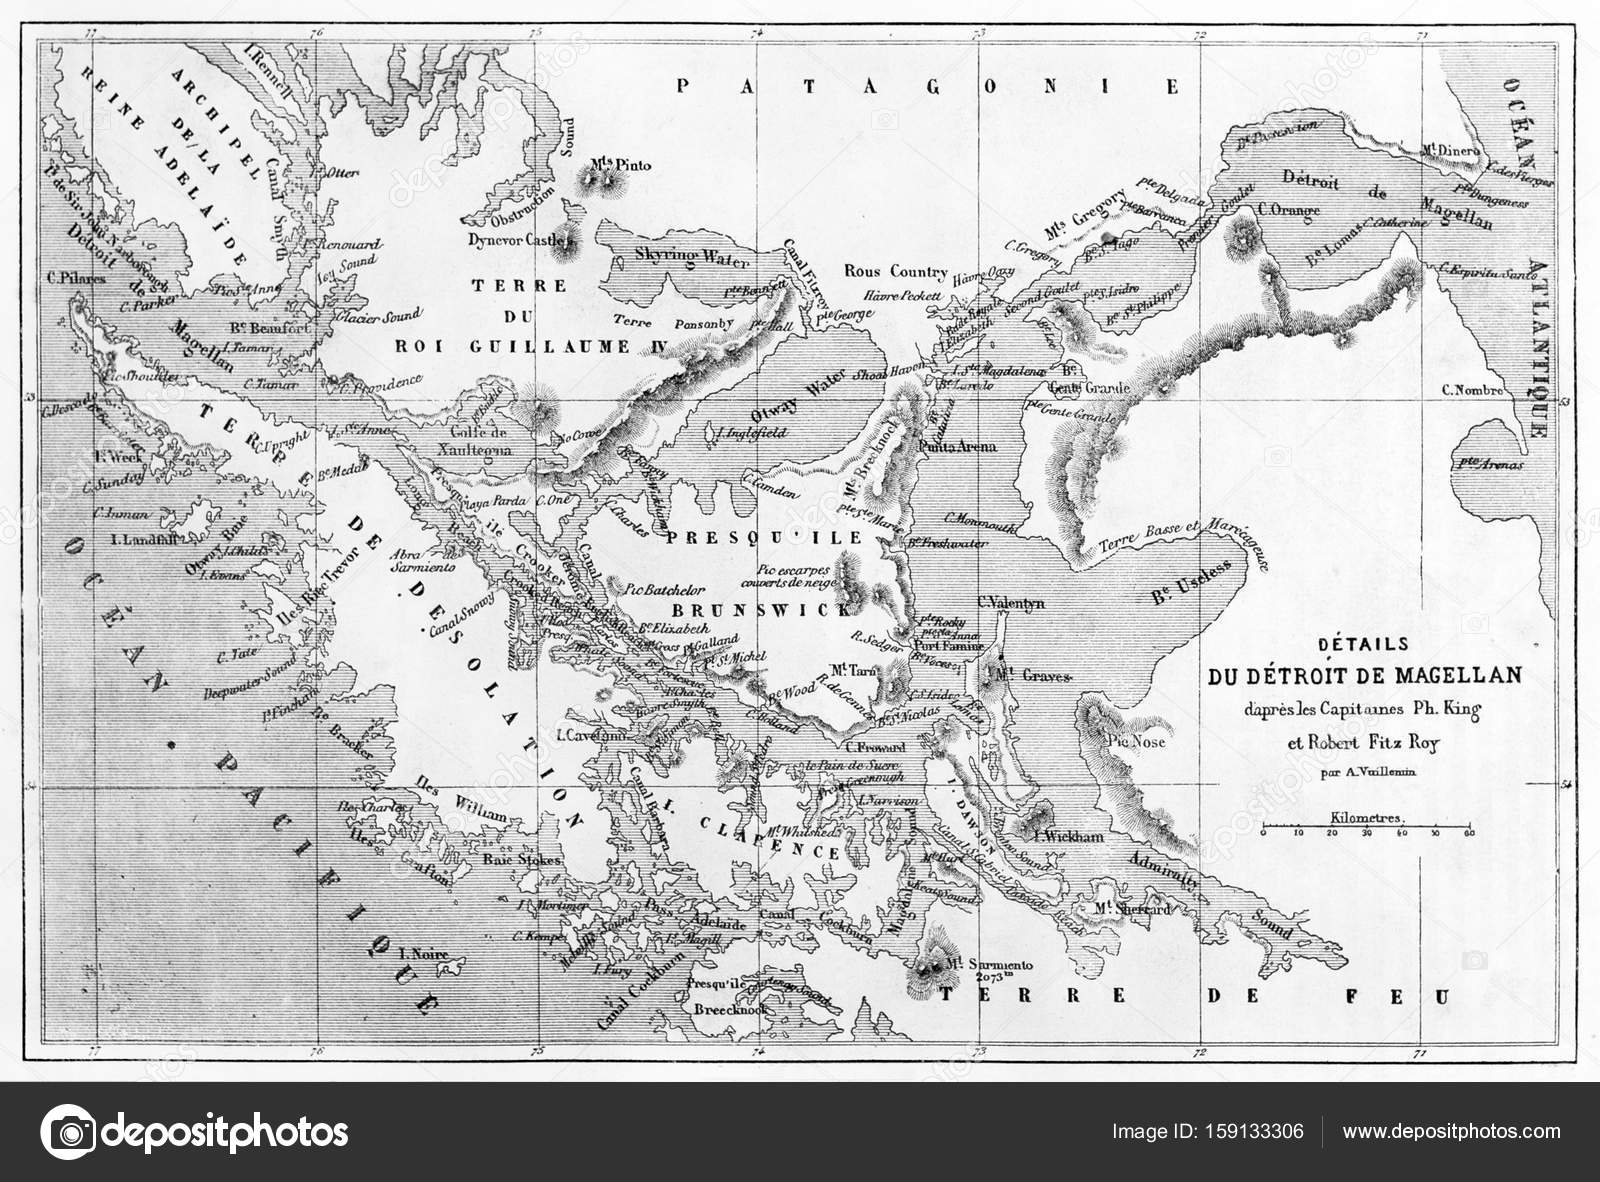 Black and white vintage map | Strait of Magellan old map ... on da vinci map, da gama map, ibn battuta map, pendragon map, google map, genesis map, zheng he map, palm map, lacrosse map, william clark map, sir francis drake map, henry the navigator map, tricare map, bartholomew dias map, asia map, llanos south america map, world map, strait of magellen map, columbus map, tomtom map,